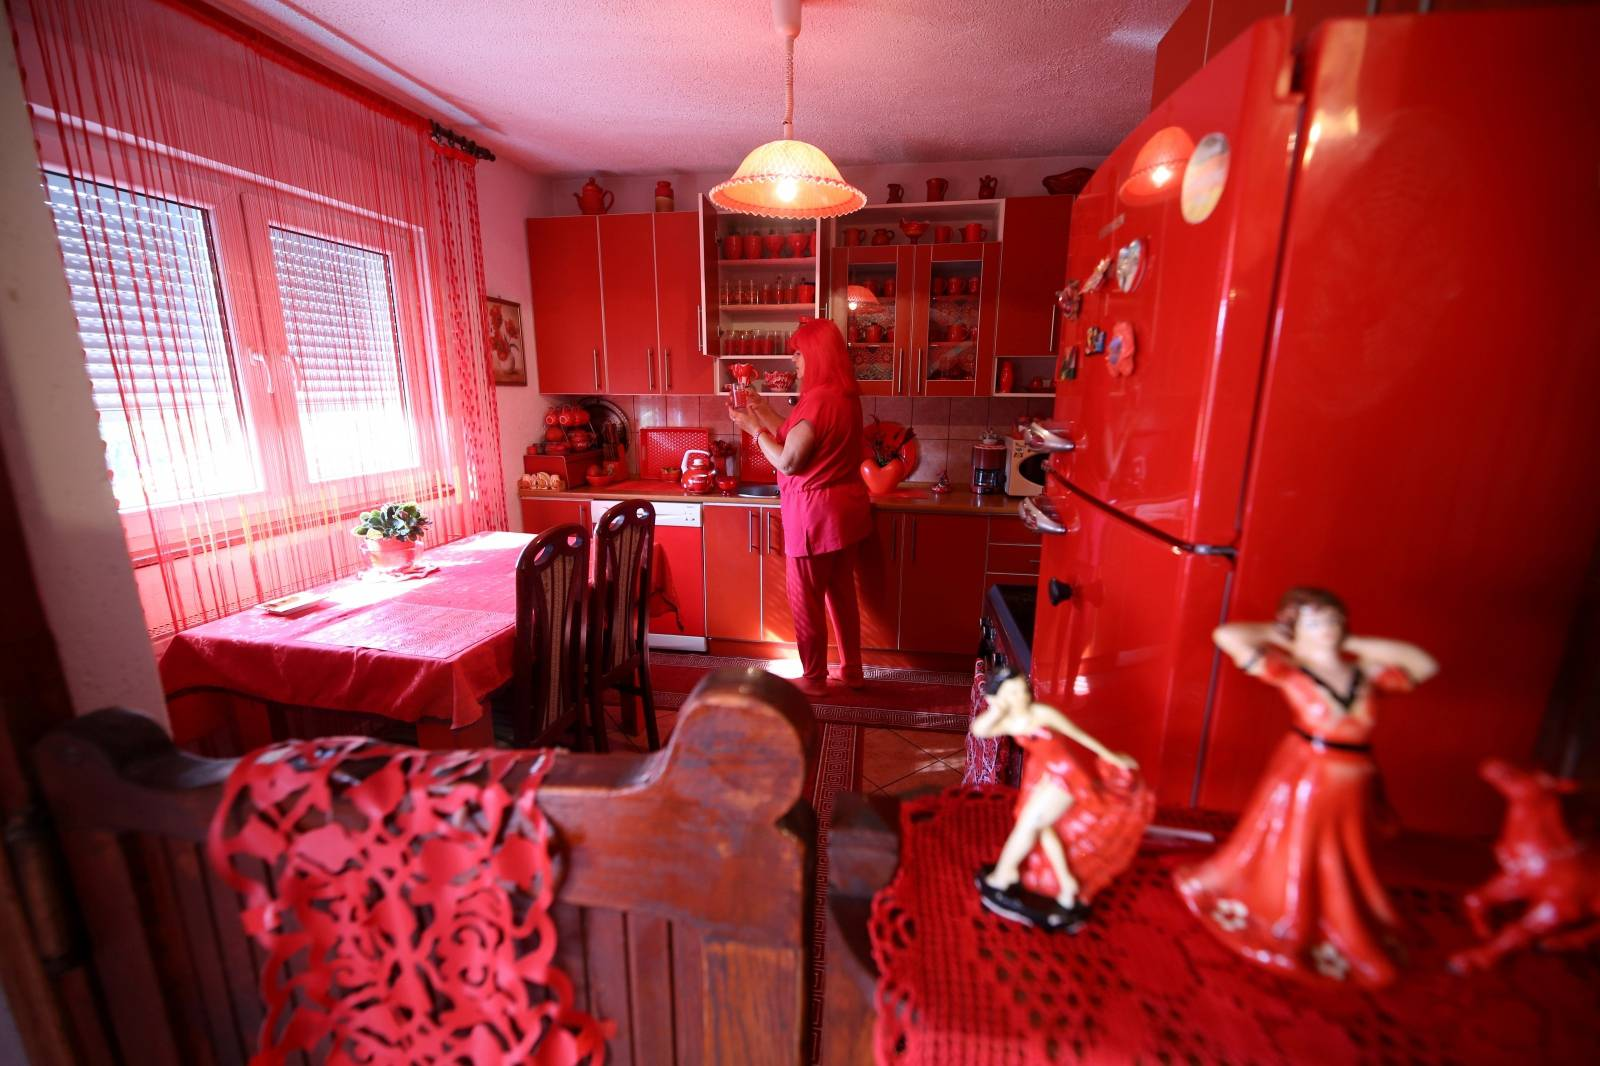 Zorica Rebernik, obsessed with the red color, stands in the kitchen inside her house in the village of Breze near Tuzla